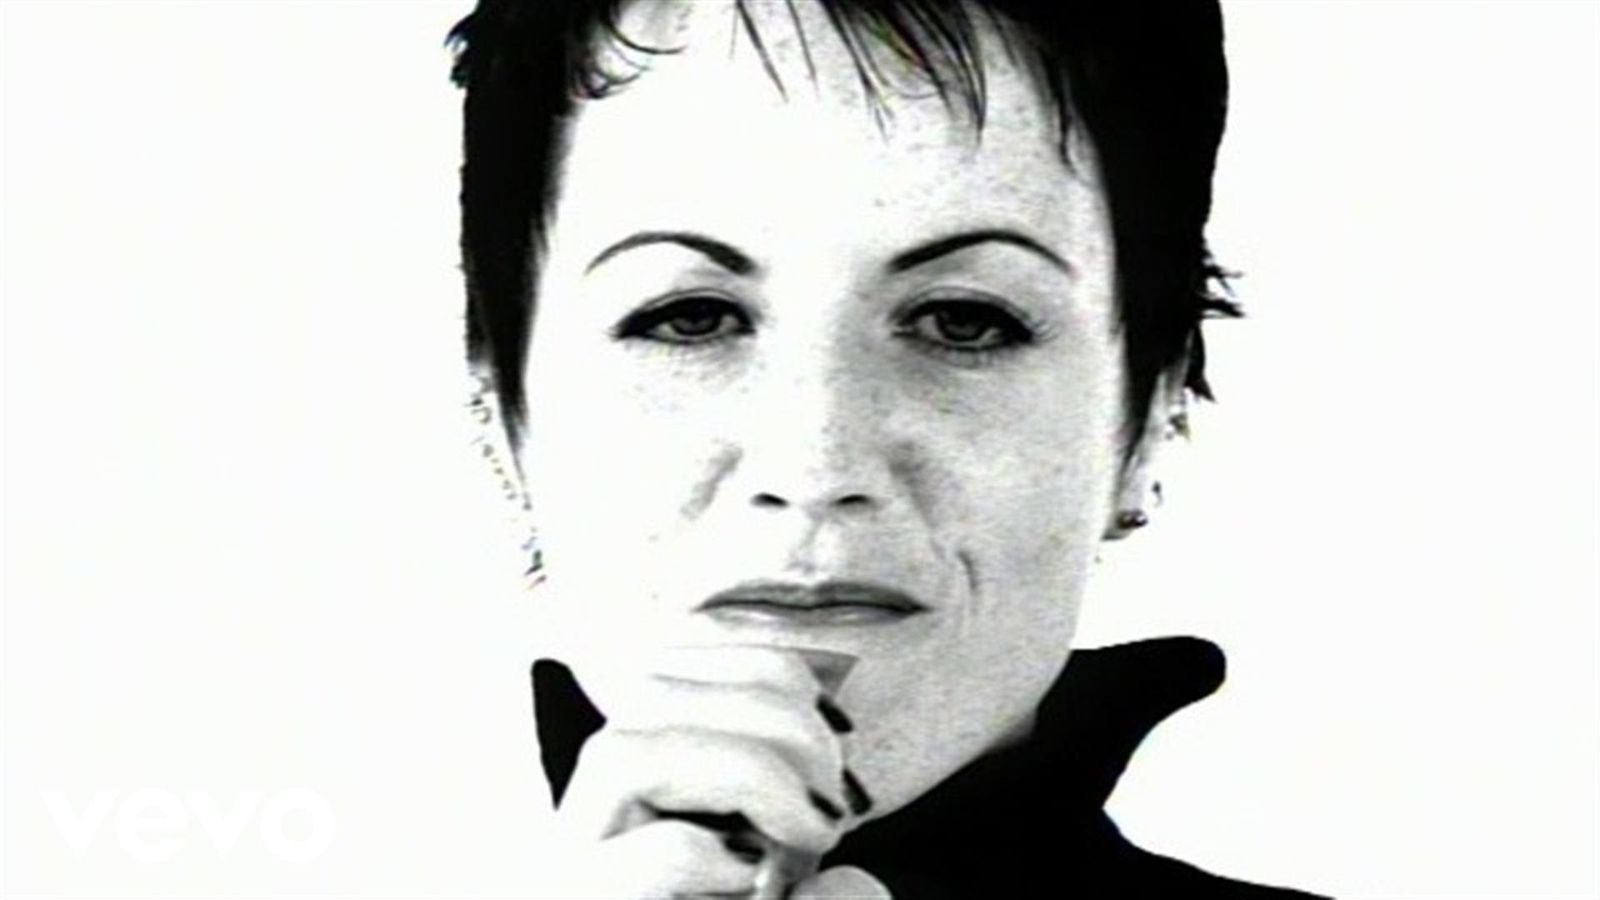 'Just my imagination', de The Cranberries